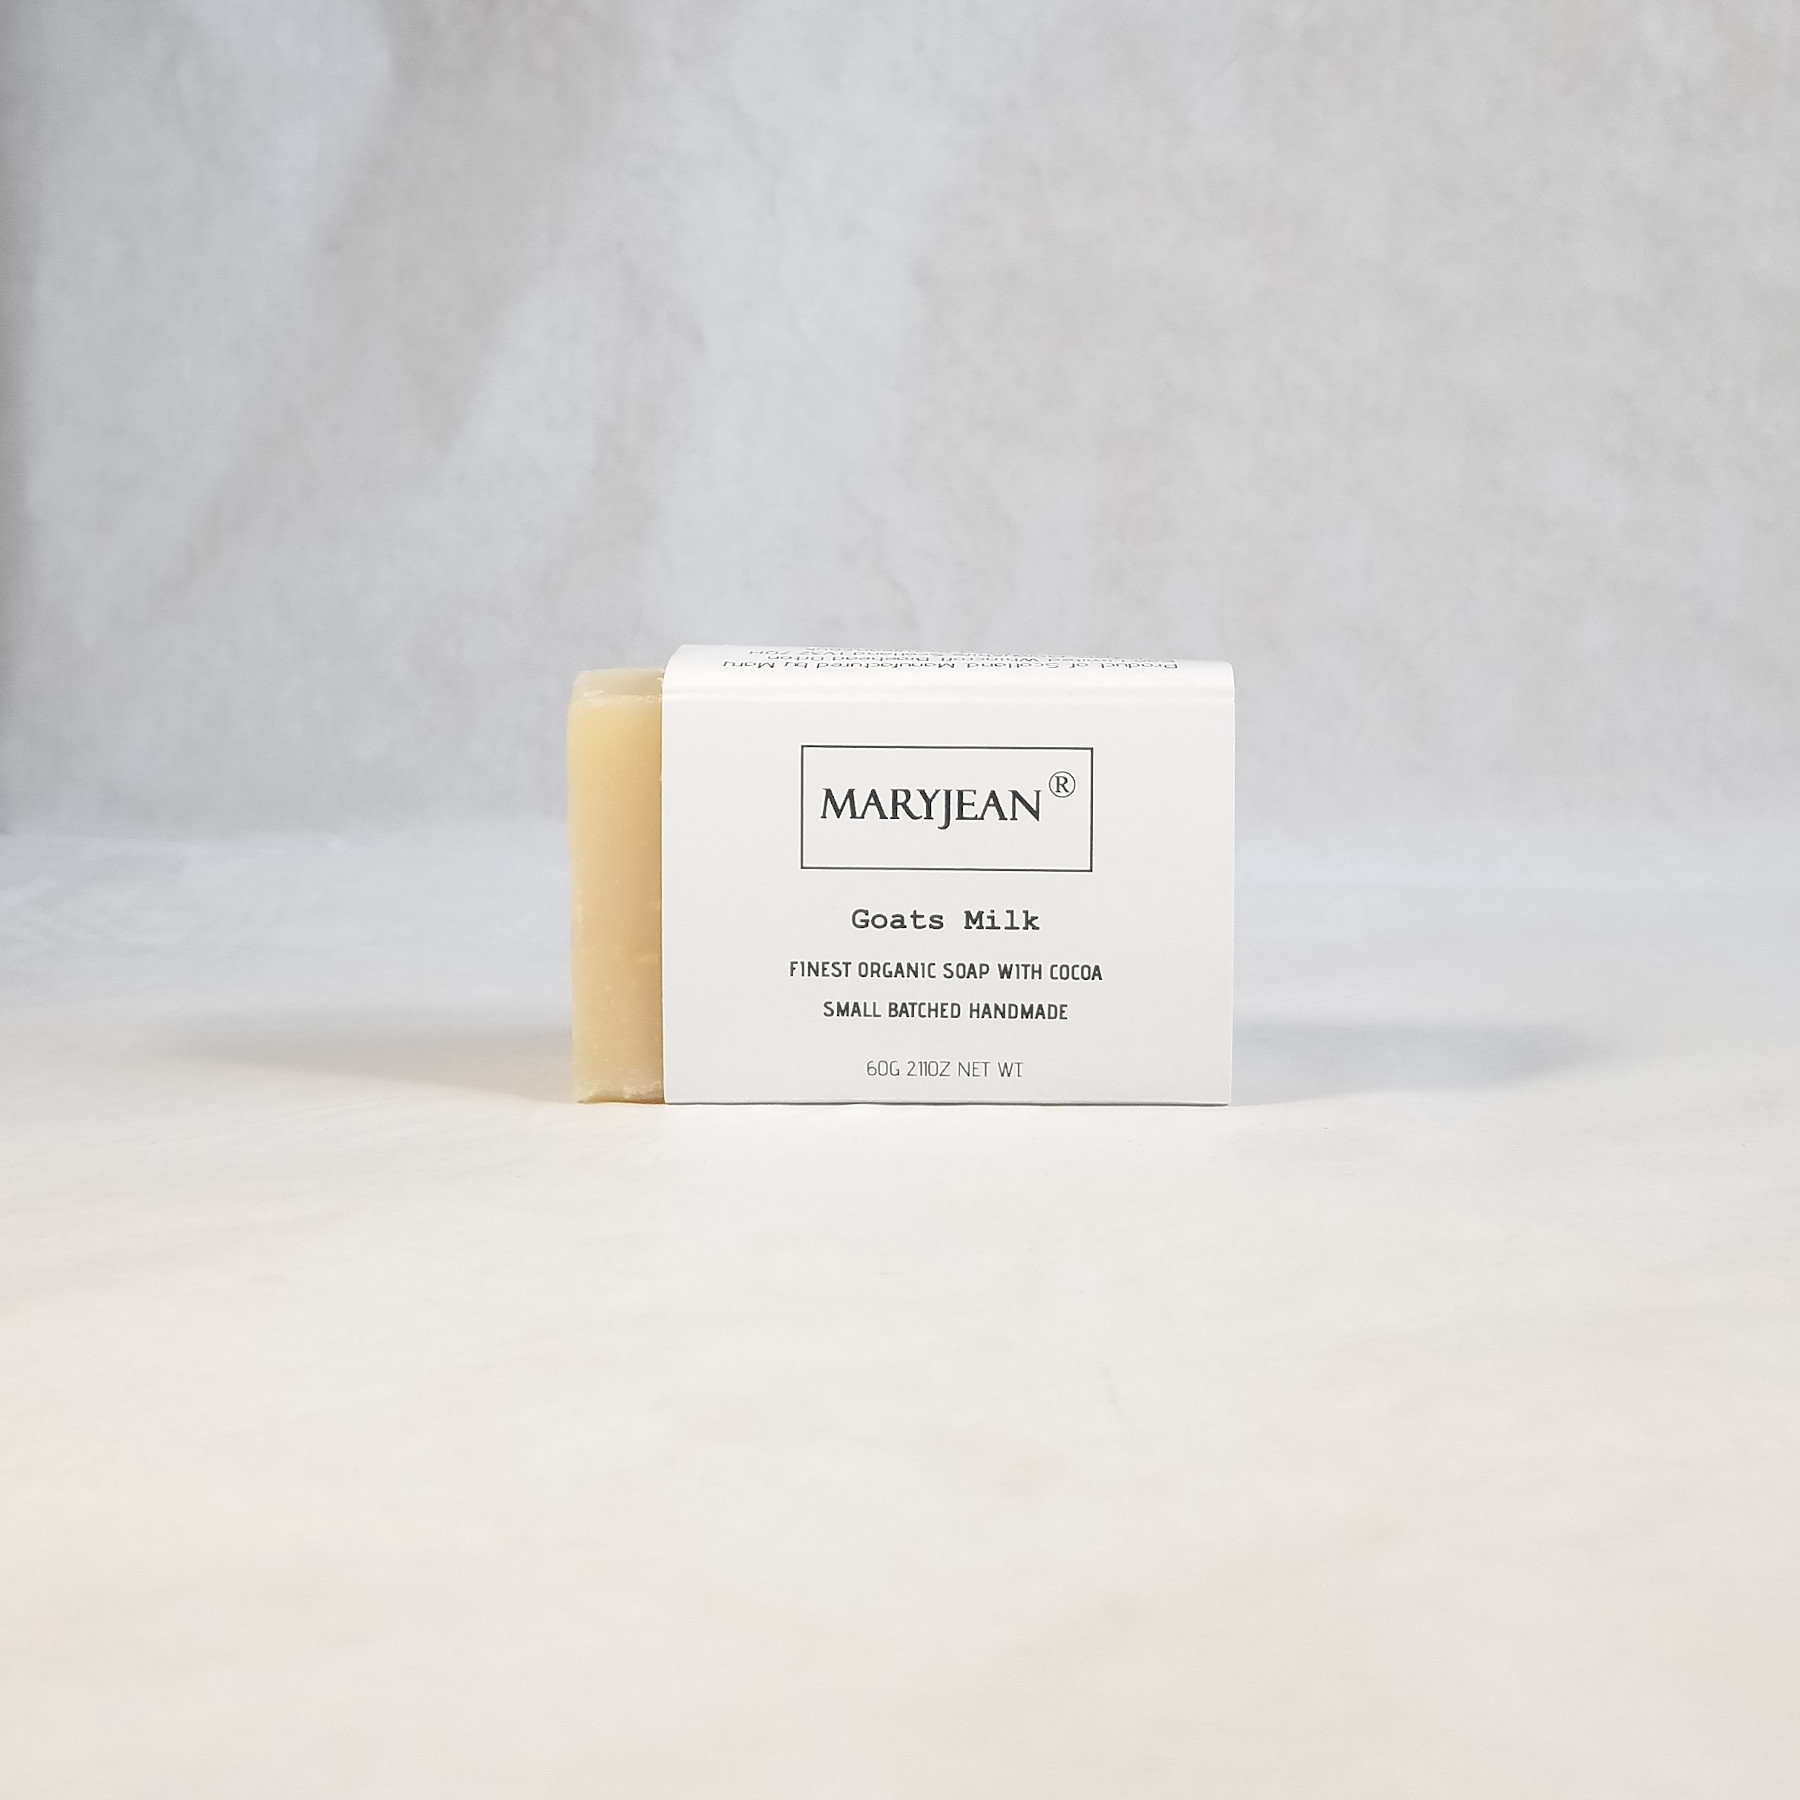 Travel size Organic Scottish Goats Milk Soap Handmade with Cocoa Best solution soap bar for eczema and psoriasis leaving your skin repaired and polished with a glow from goats milk soap